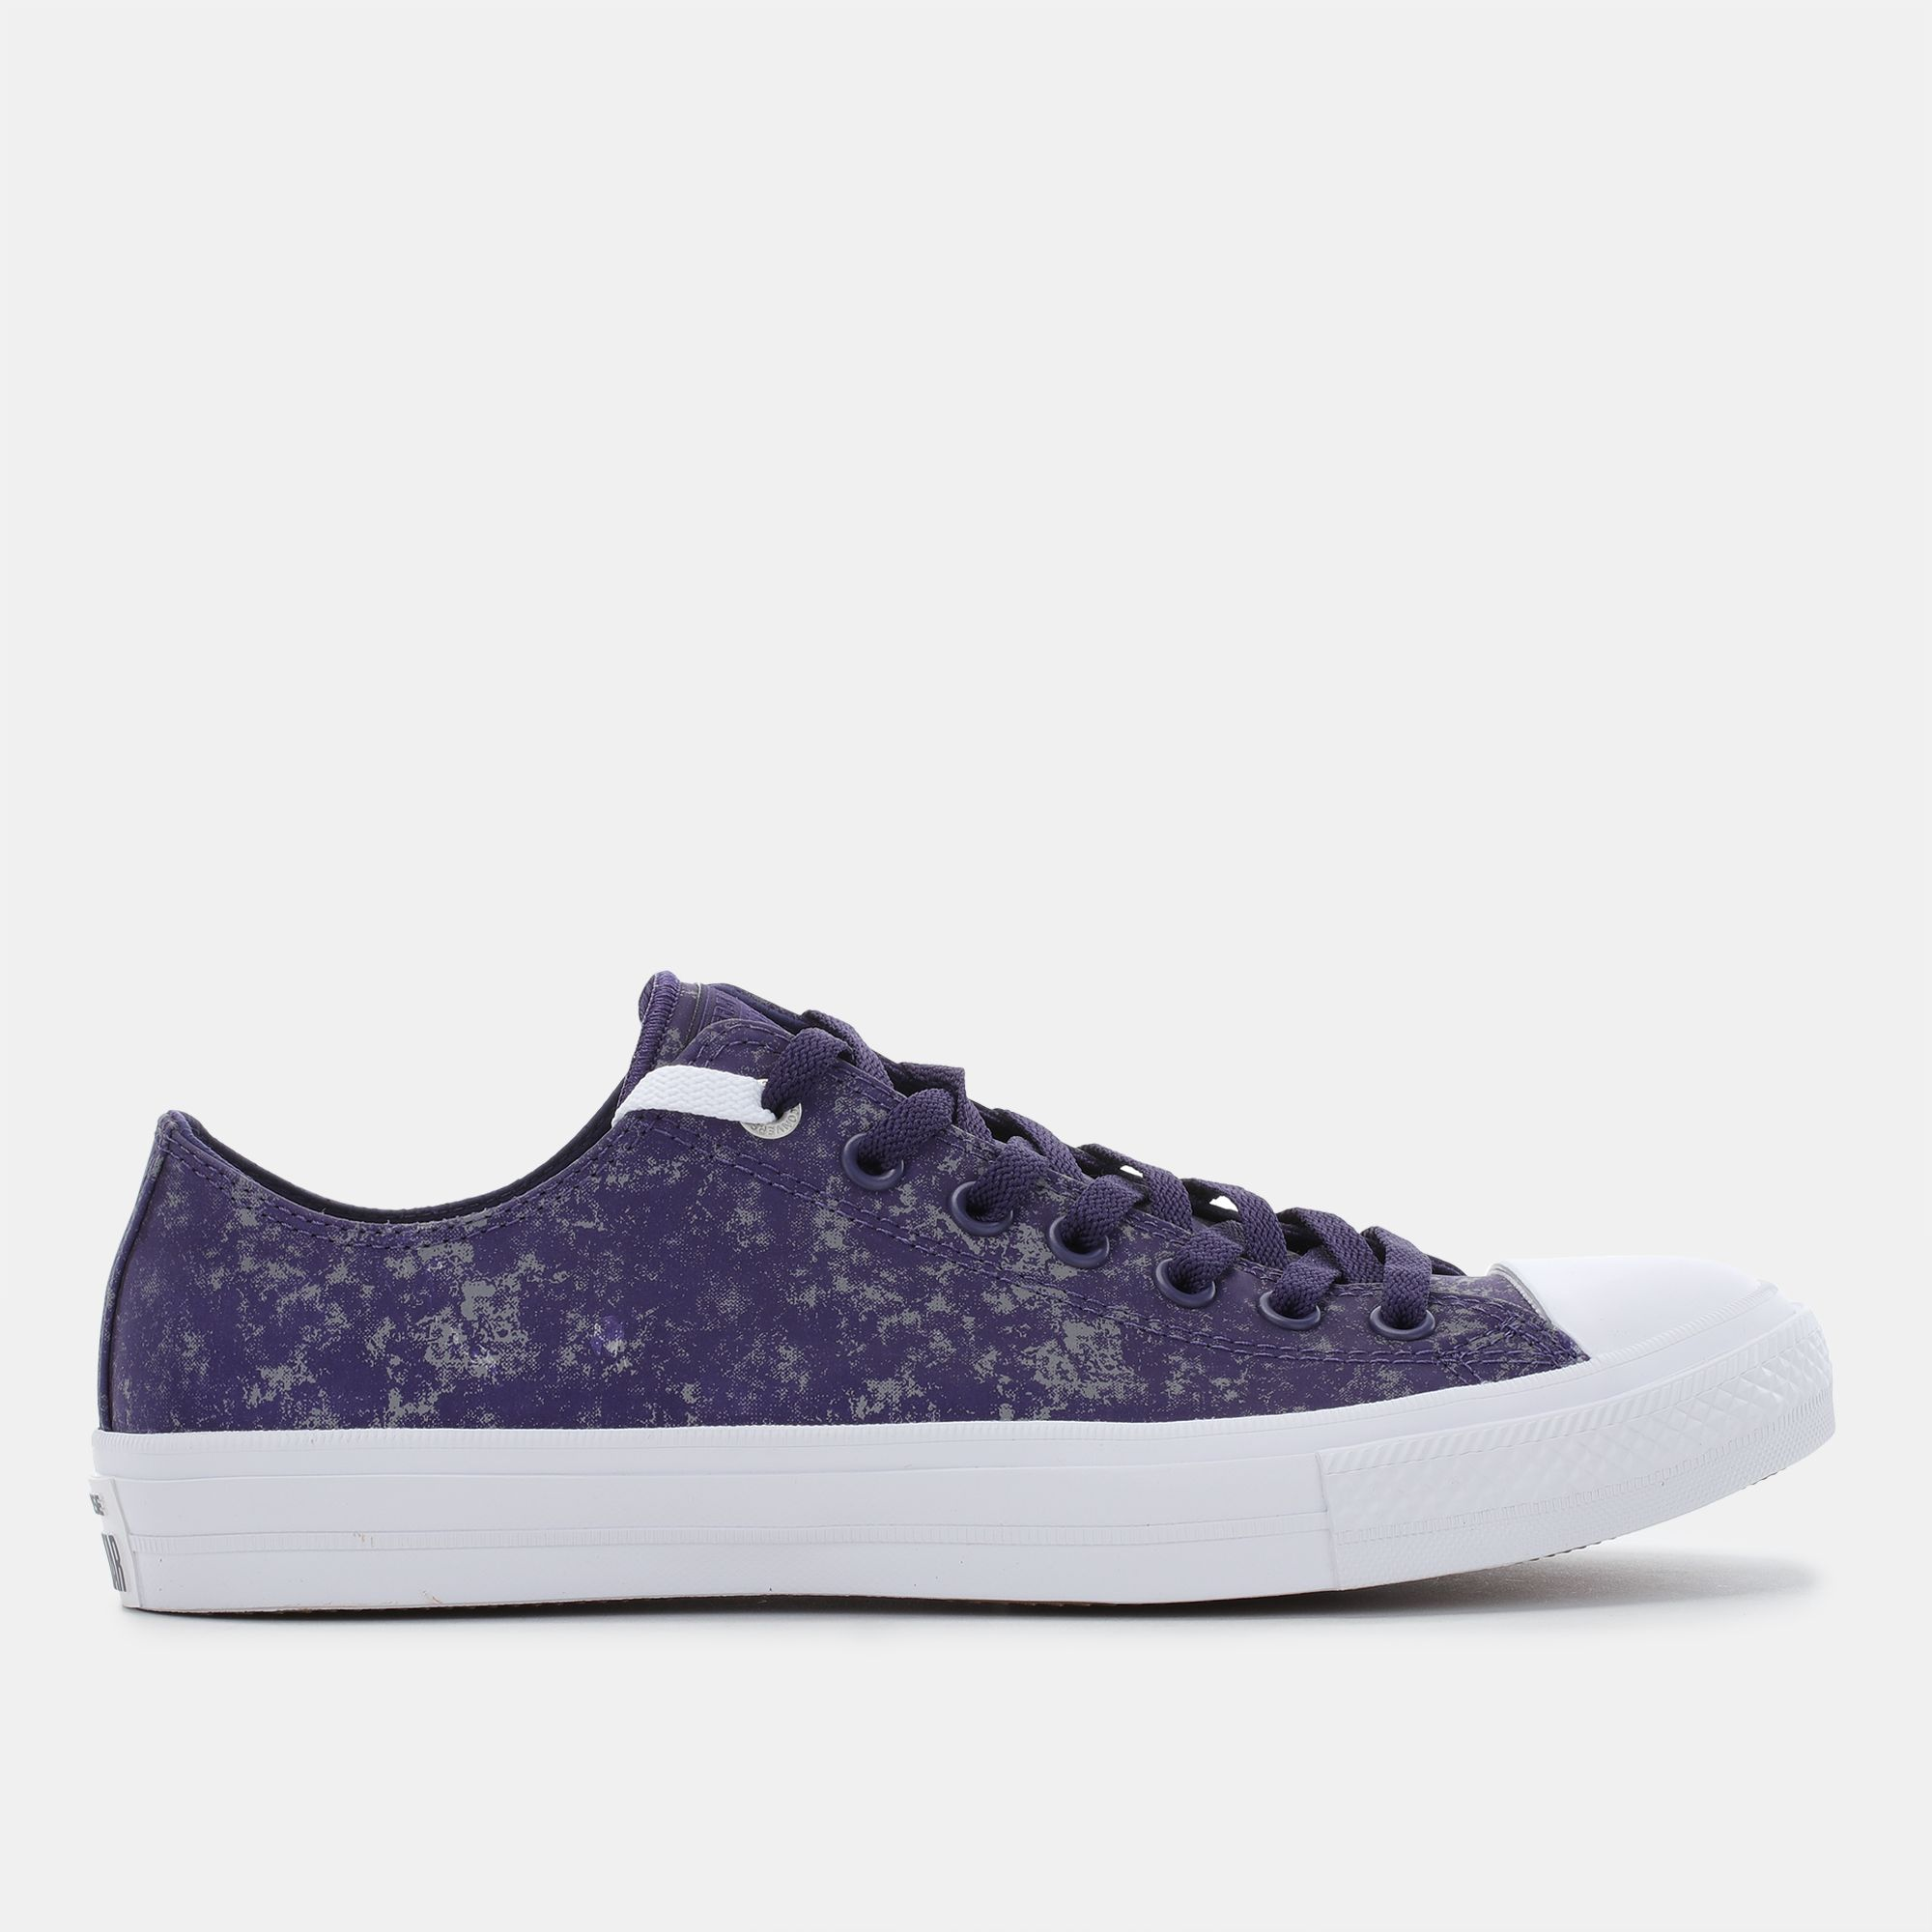 57615f007c9 Shop Purple Converse Chuck Taylor All Star II Reflective Wash Shoe for  Unisex by Converse